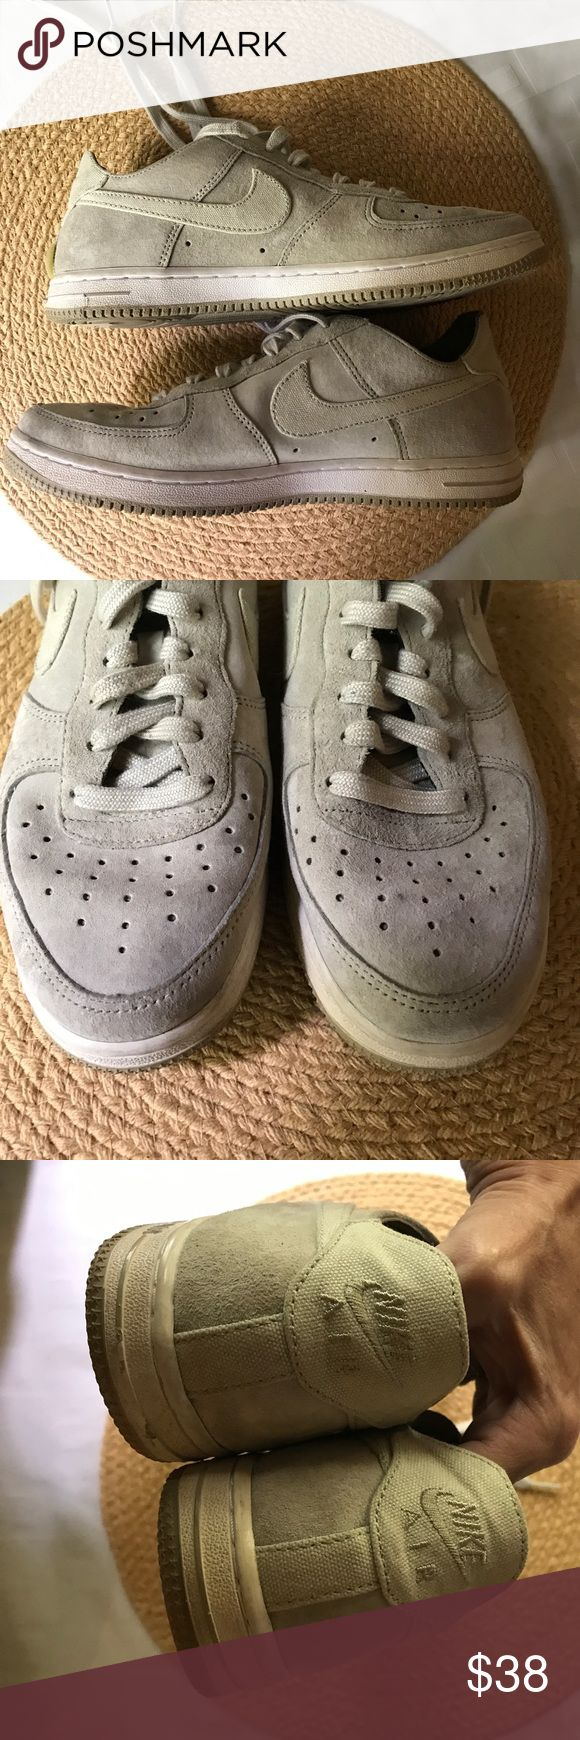 """Ladies size 7 Grey Nikes! Like new! Suede leather & canvas make for a killer shoe! They are in perfect condition, for they were only worn a few times. Please see pictures. There is a 1/2 """" section that the piping came off on the BACK of shoes- see pics! You wouldn't have even noticed it if I didn't mention it. Thanks for browsing! Nike Shoes Athletic Shoes"""